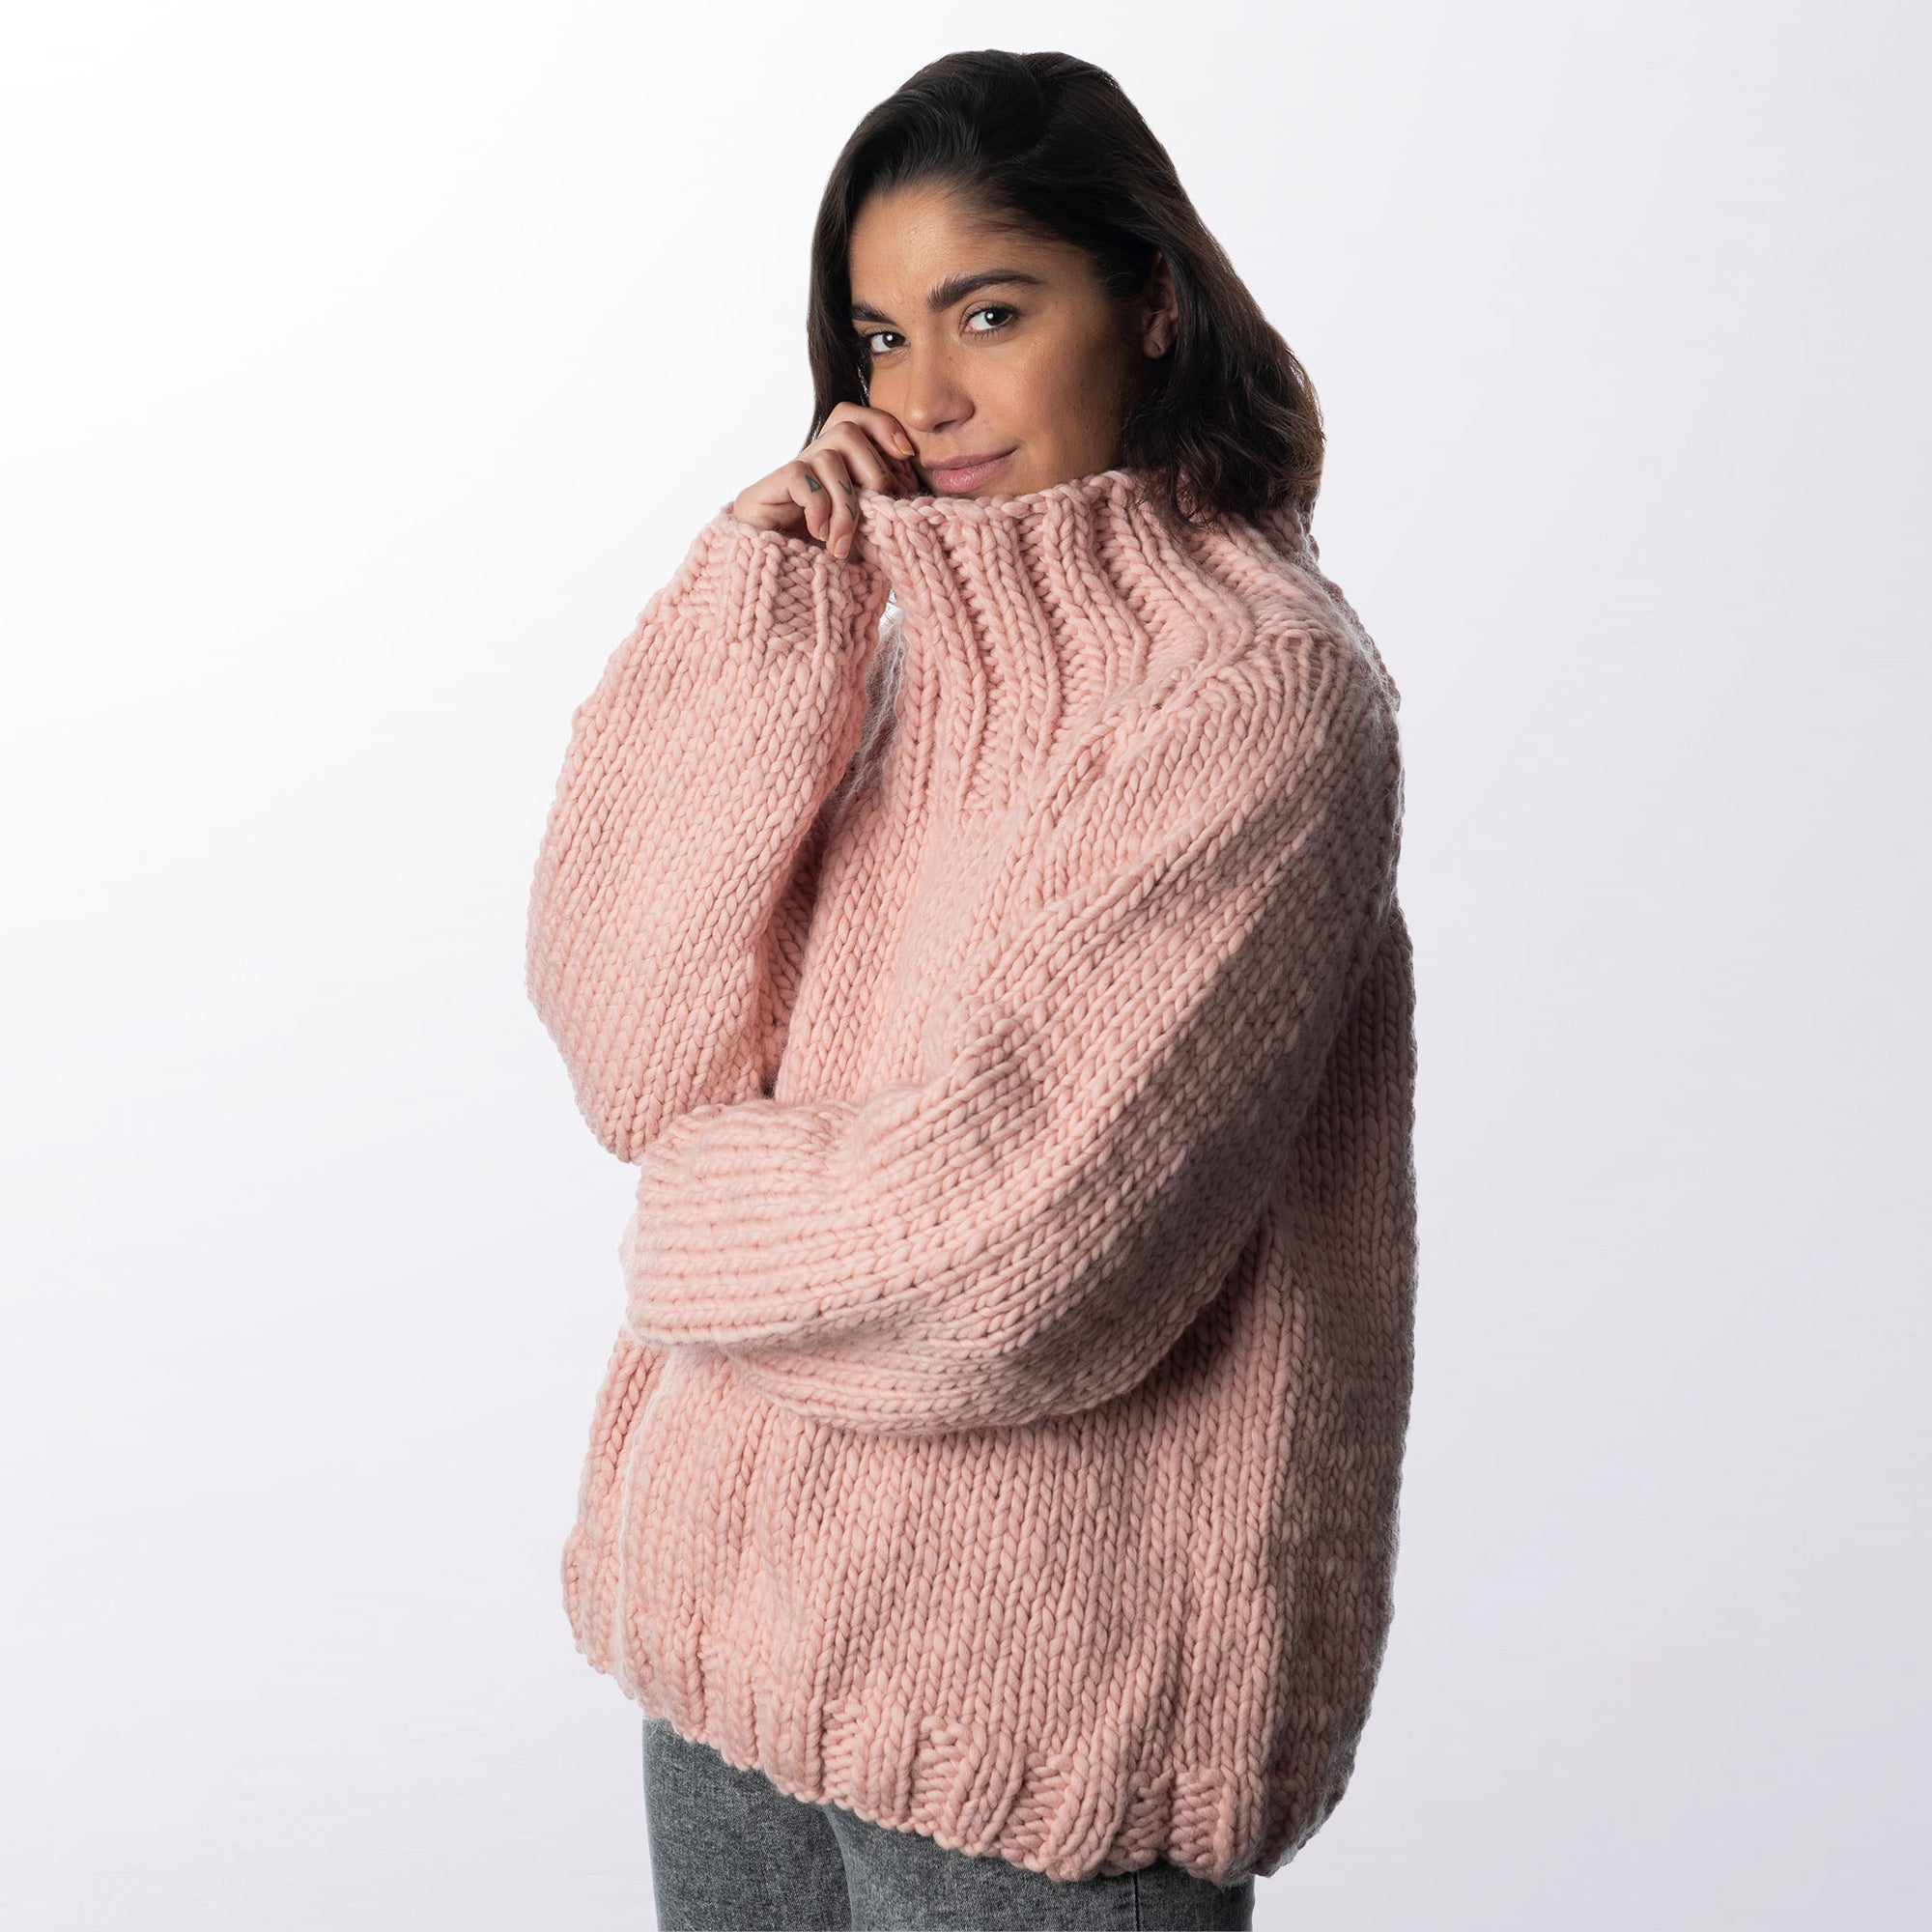 High-Neck Sweater Knitting Kit